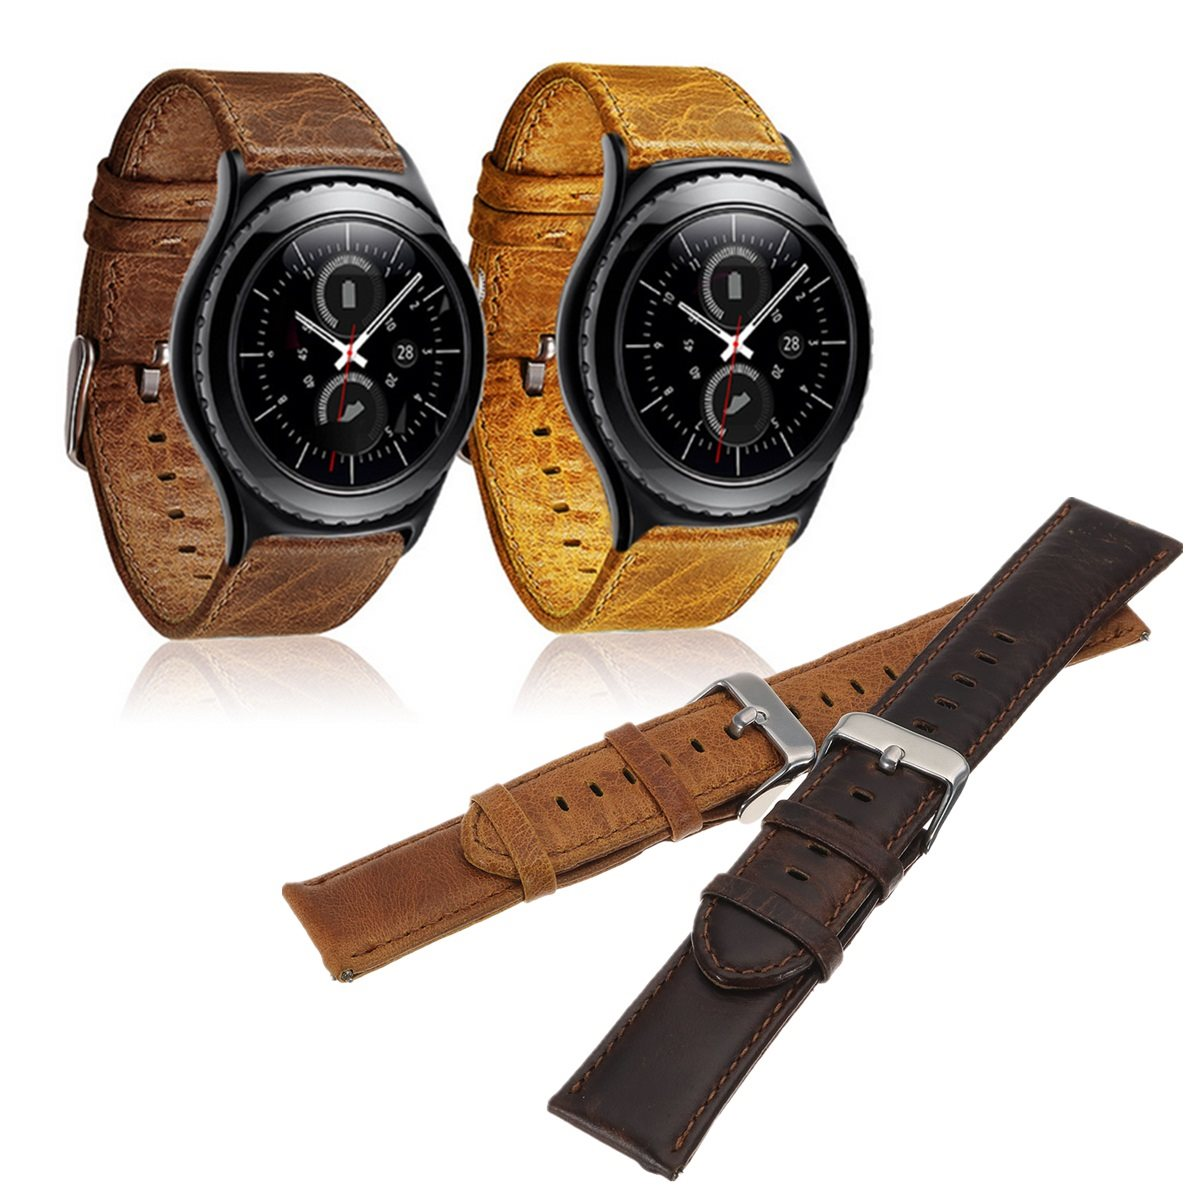 22mm Retro Genuine Leather Strap for/Samsung Gear S3 Watchband for/Gear S3/Classic Frontier Metal Buckle Watch Replacement Belt crested genuine leather strap for samsung gear s3 watch band wrist bracelet leather watchband metal buck belt